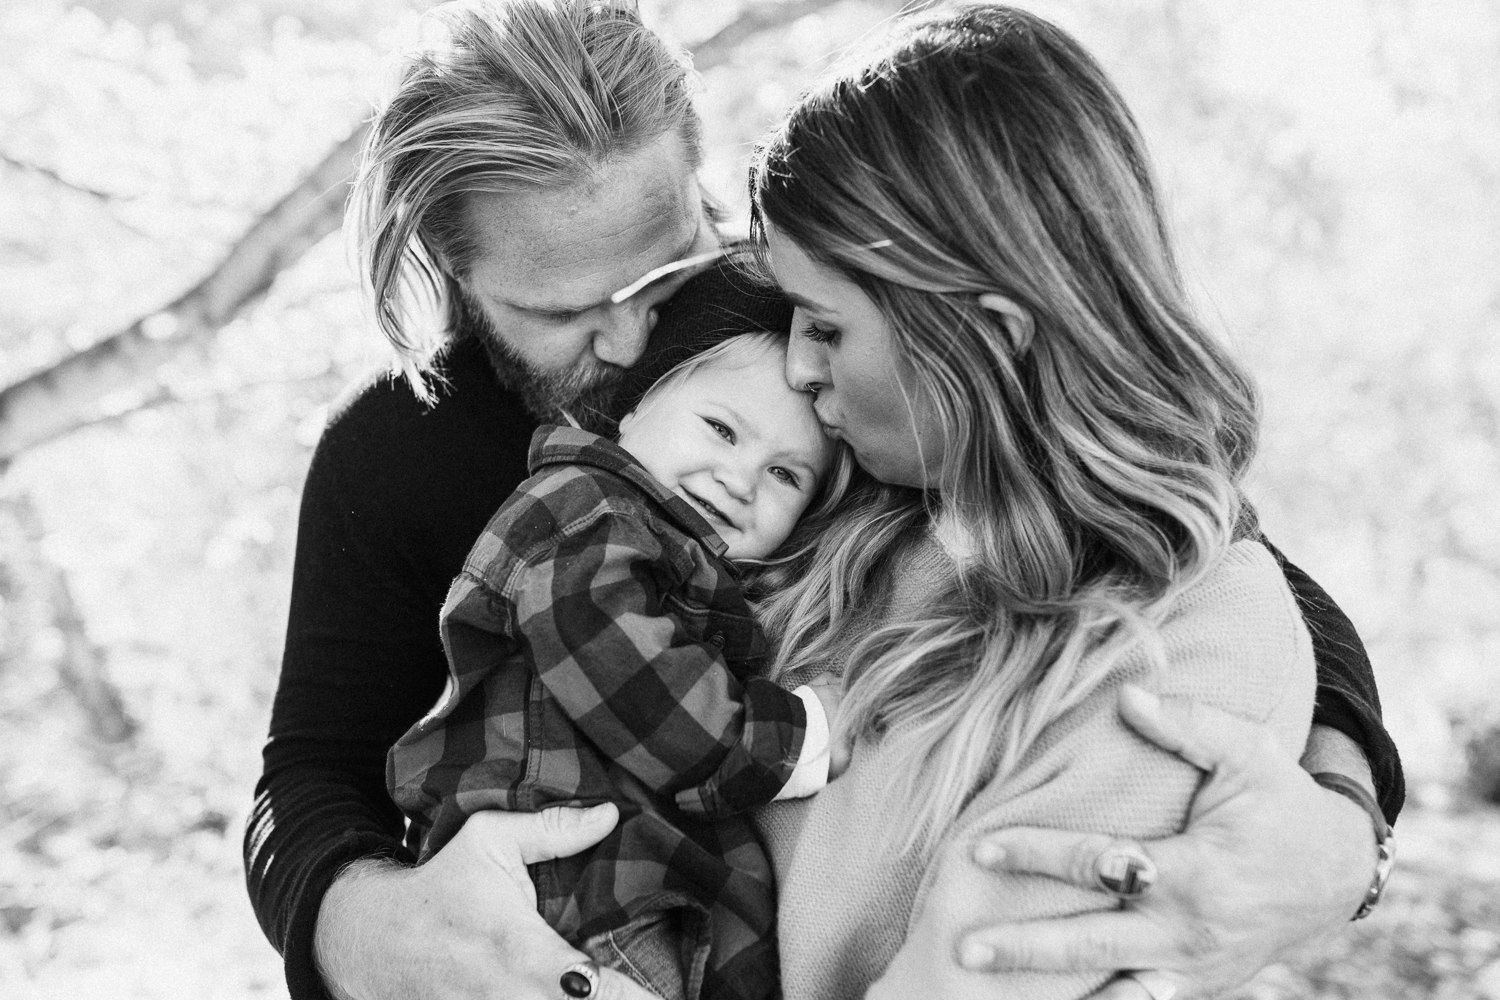 black-and-white-intimate-photo-of-parents-kissing-child-salt-lake-city-utah